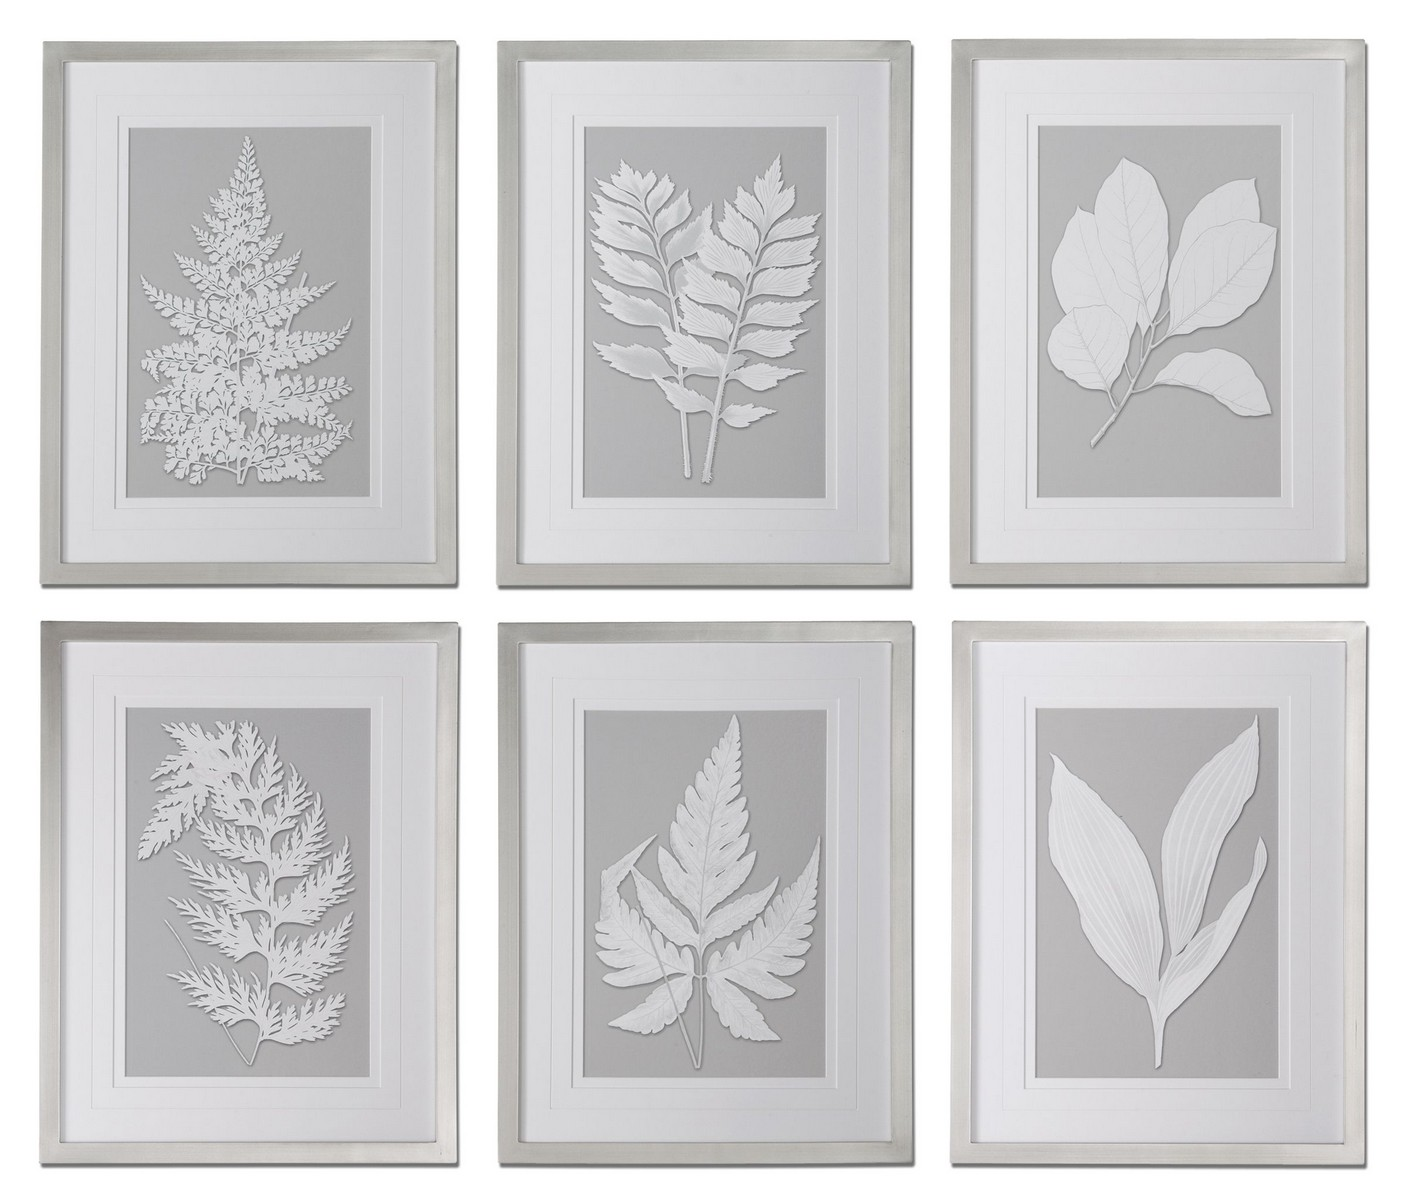 Uttermost Moonlight Ferns Framed Art - Set of 6 41394